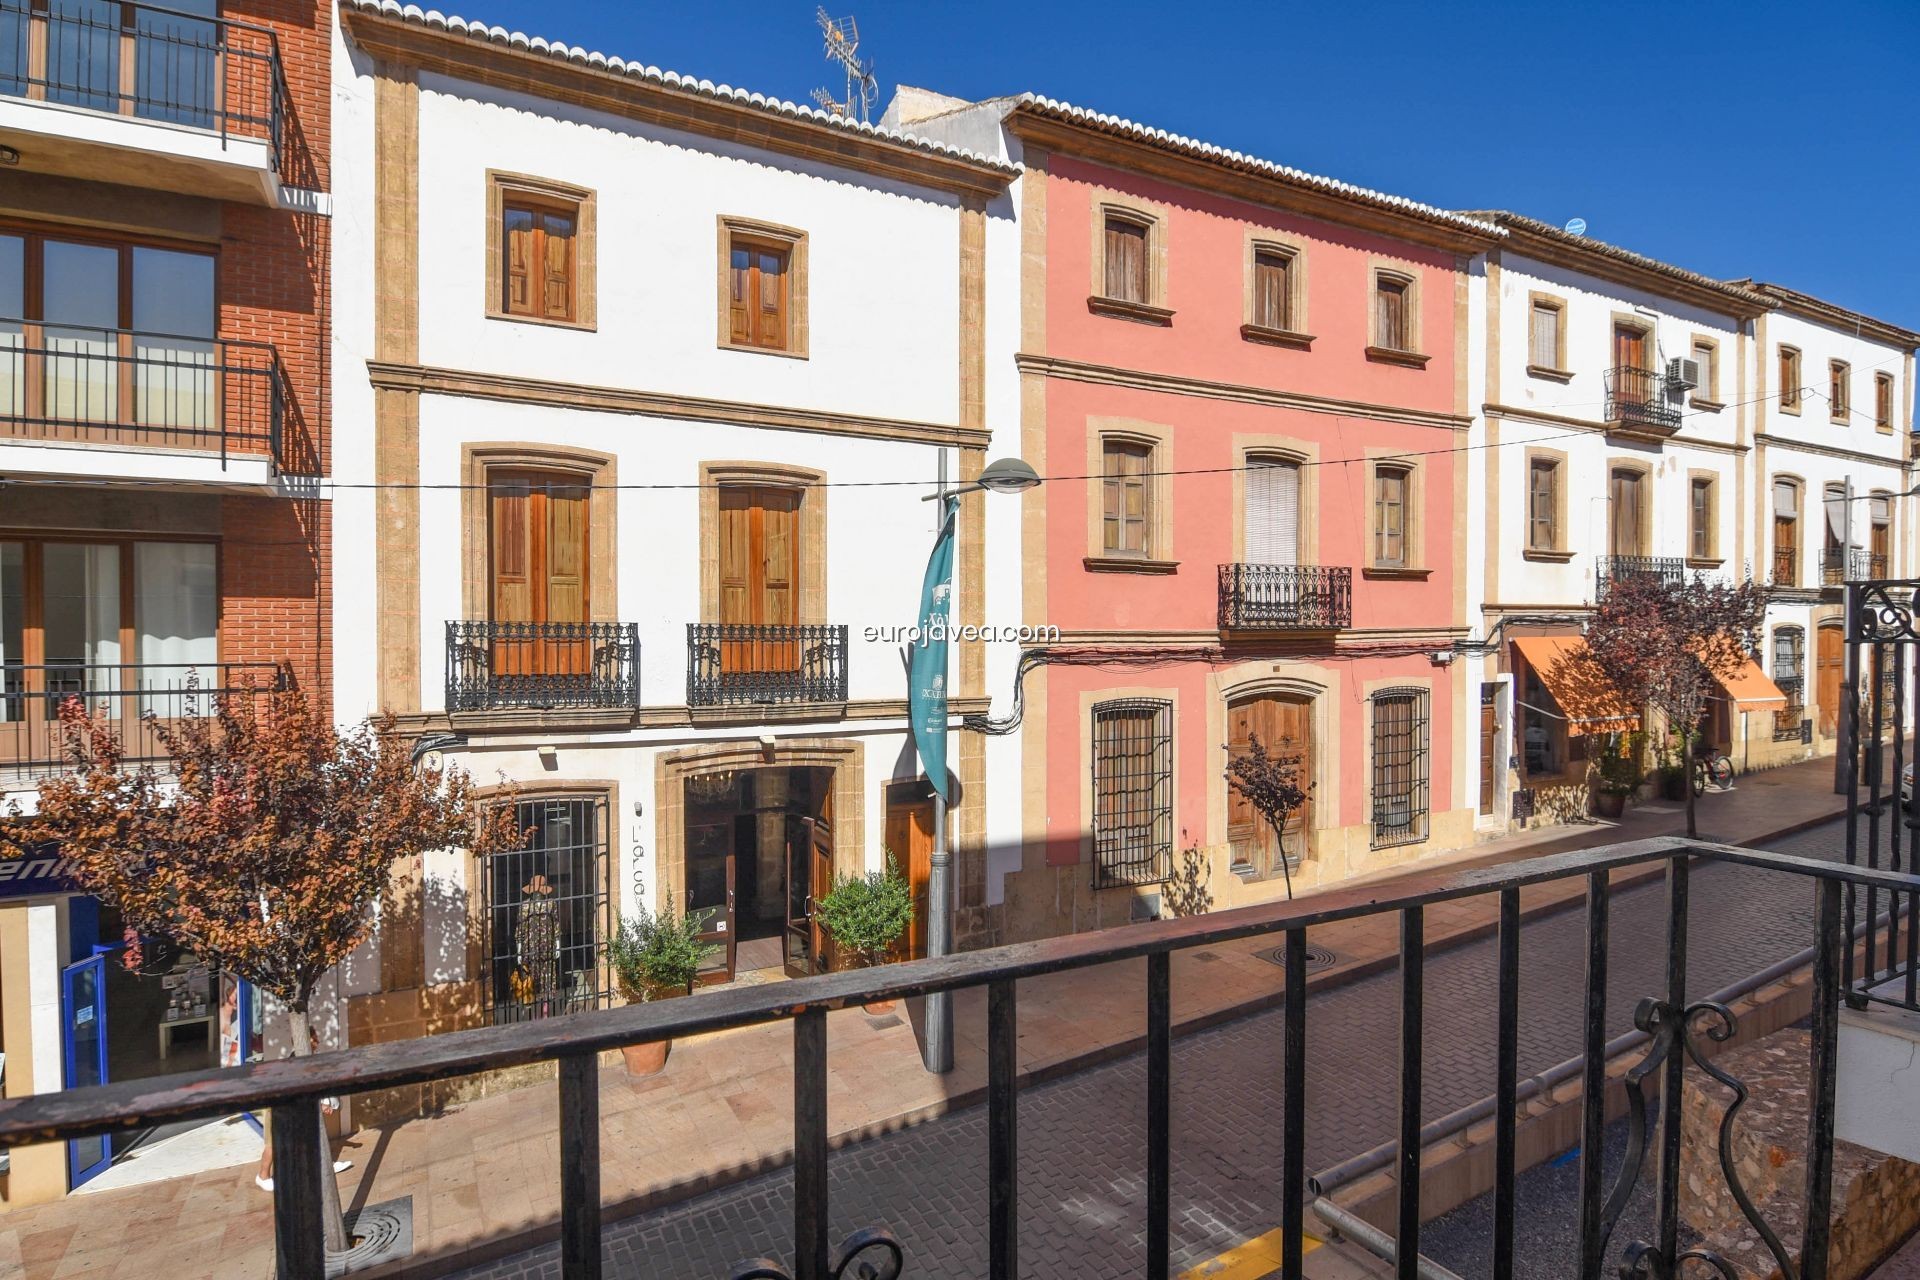 Charming houses in the town of Jávea.